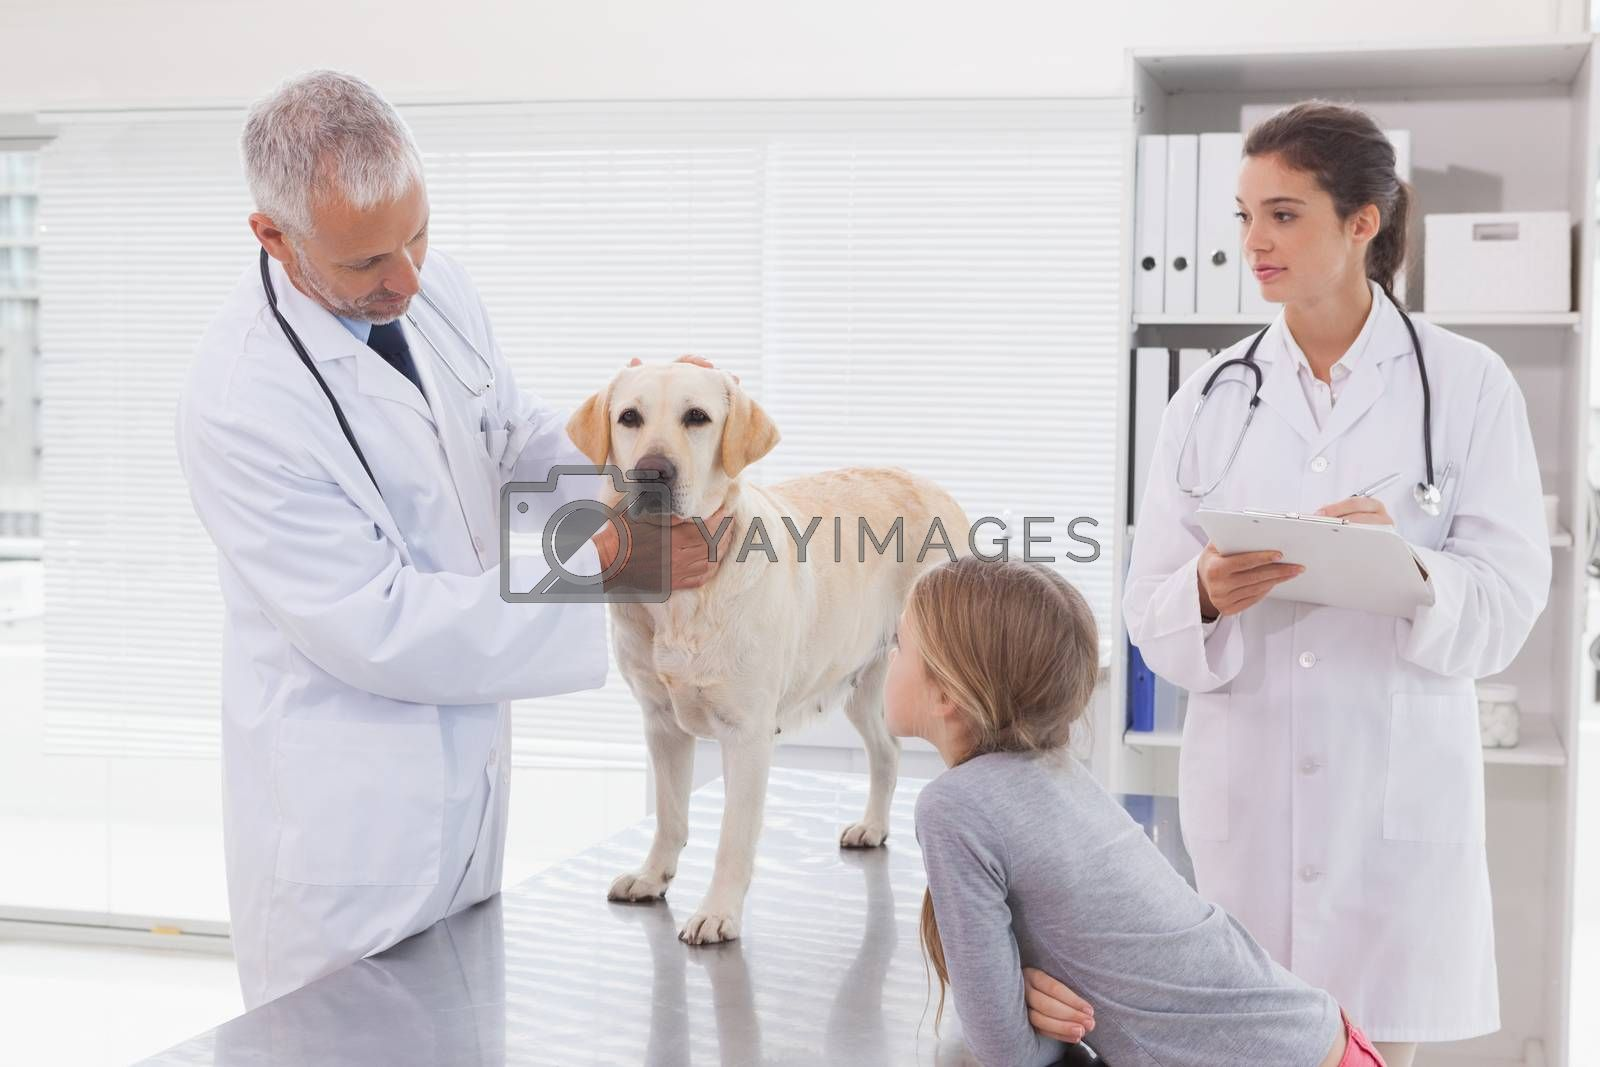 Vet coworker examining a dog with its owner in medical office